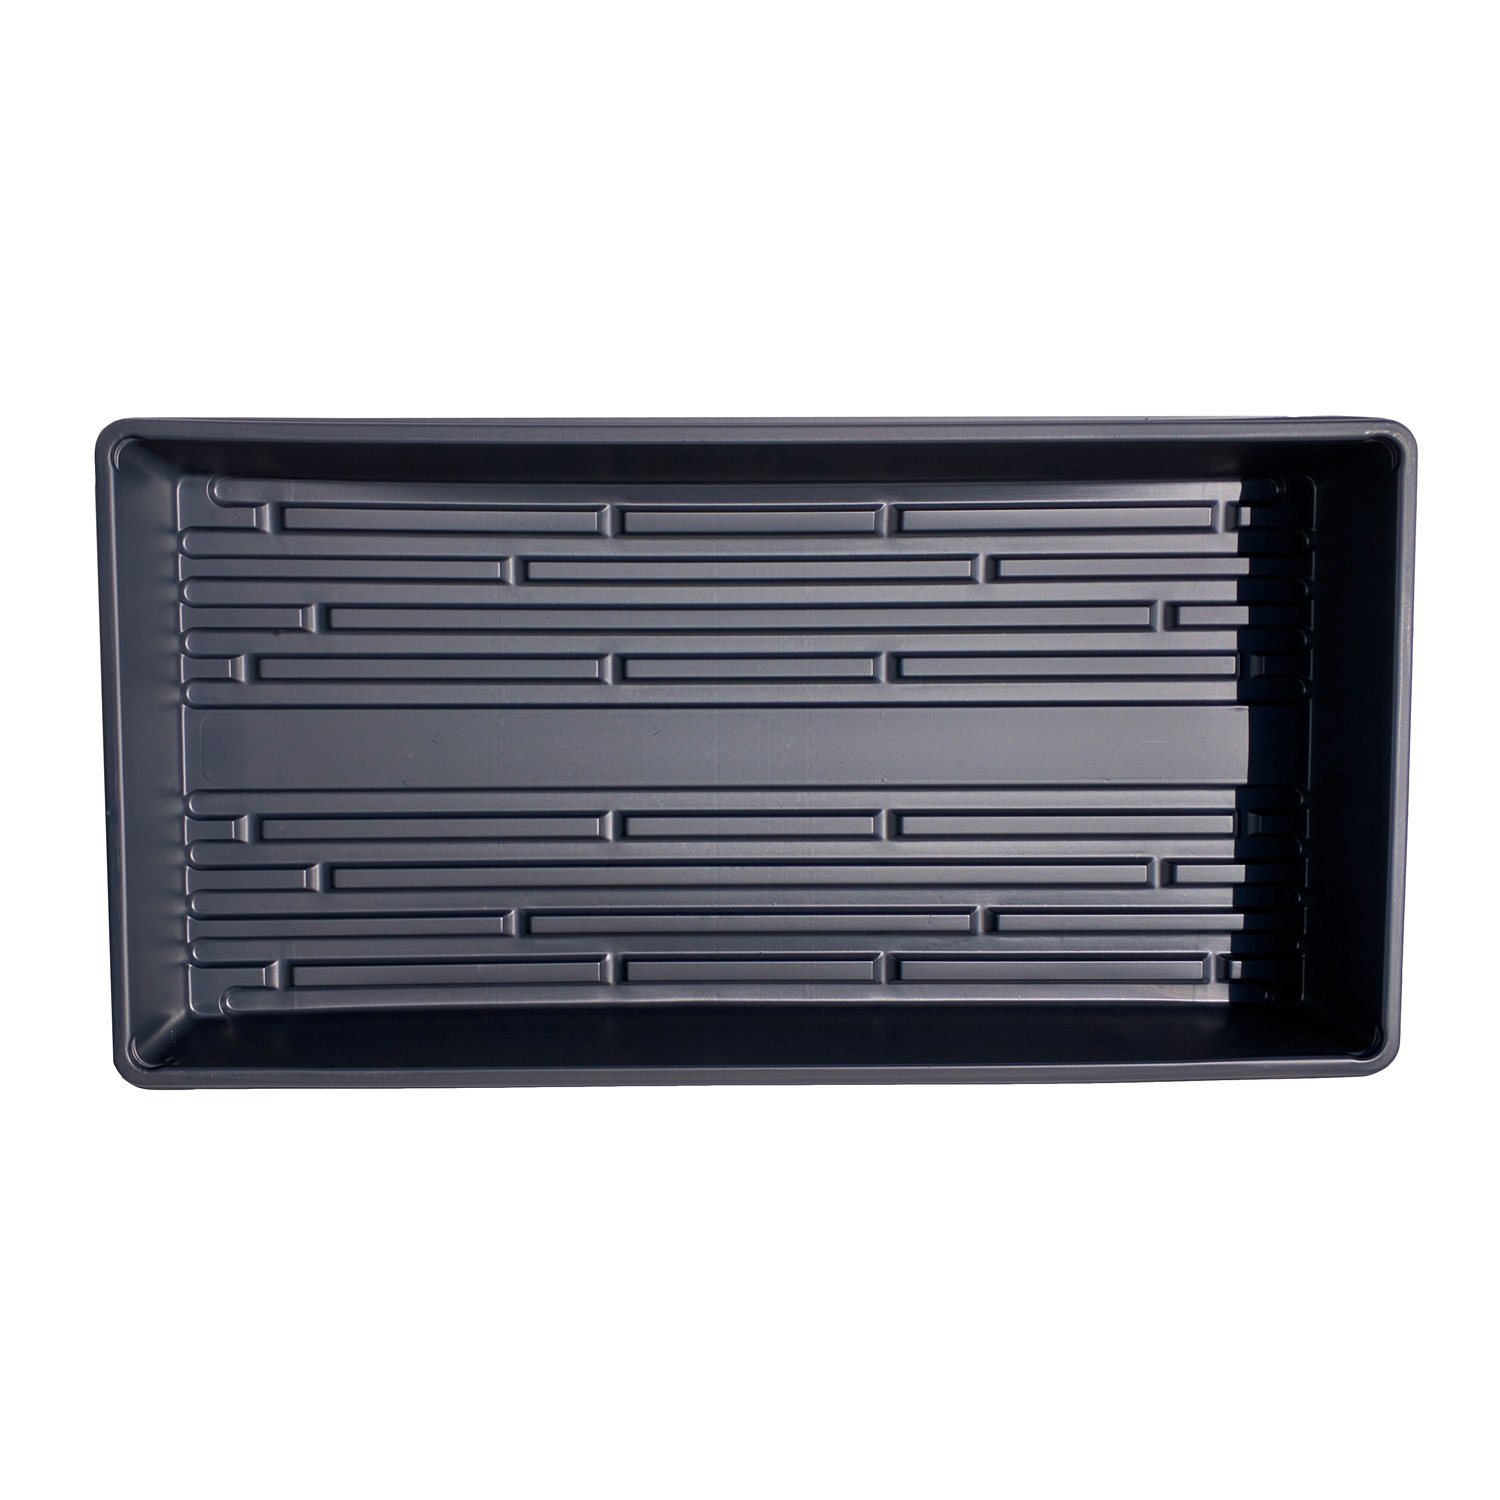 Seed Starting Trays - New Thicker Plastic - Made in USA - 1020 Trays Solid Bottom Premium Quality - Garden, Greenhouse, Hydroponics, Wheatgrass, Microgreens (Black No Holes, 50 Pack)